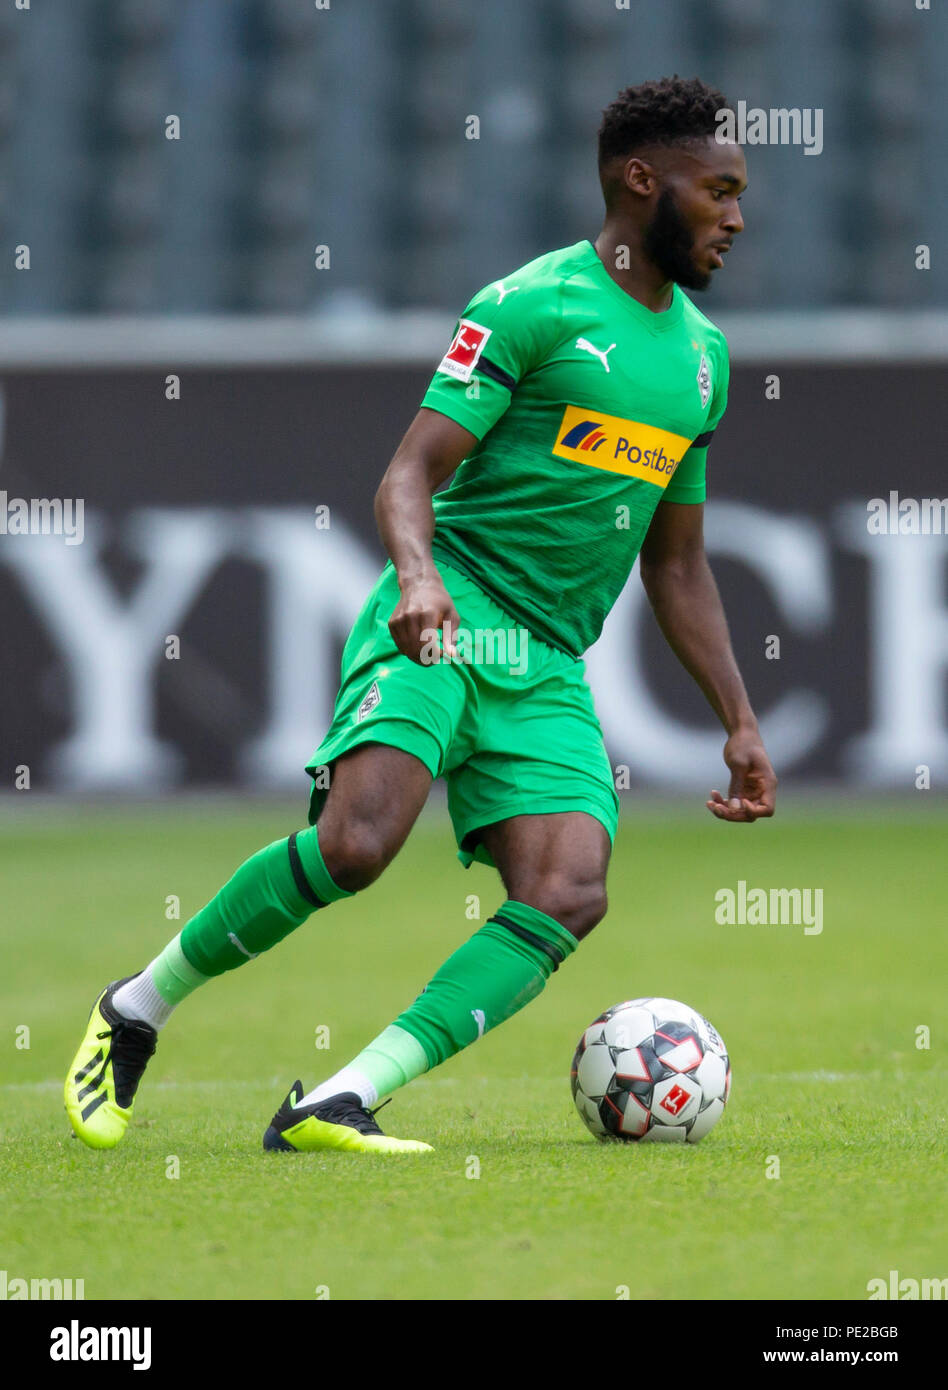 Moenchengladbach, Germany August 12 2018, friendly match, Borussia Moenchengladbach vs FC Wegberg-Beeck: Mandela Egbo (BMG) in action.                Credit: Juergen Schwarz/Alamy Live News - Stock Image